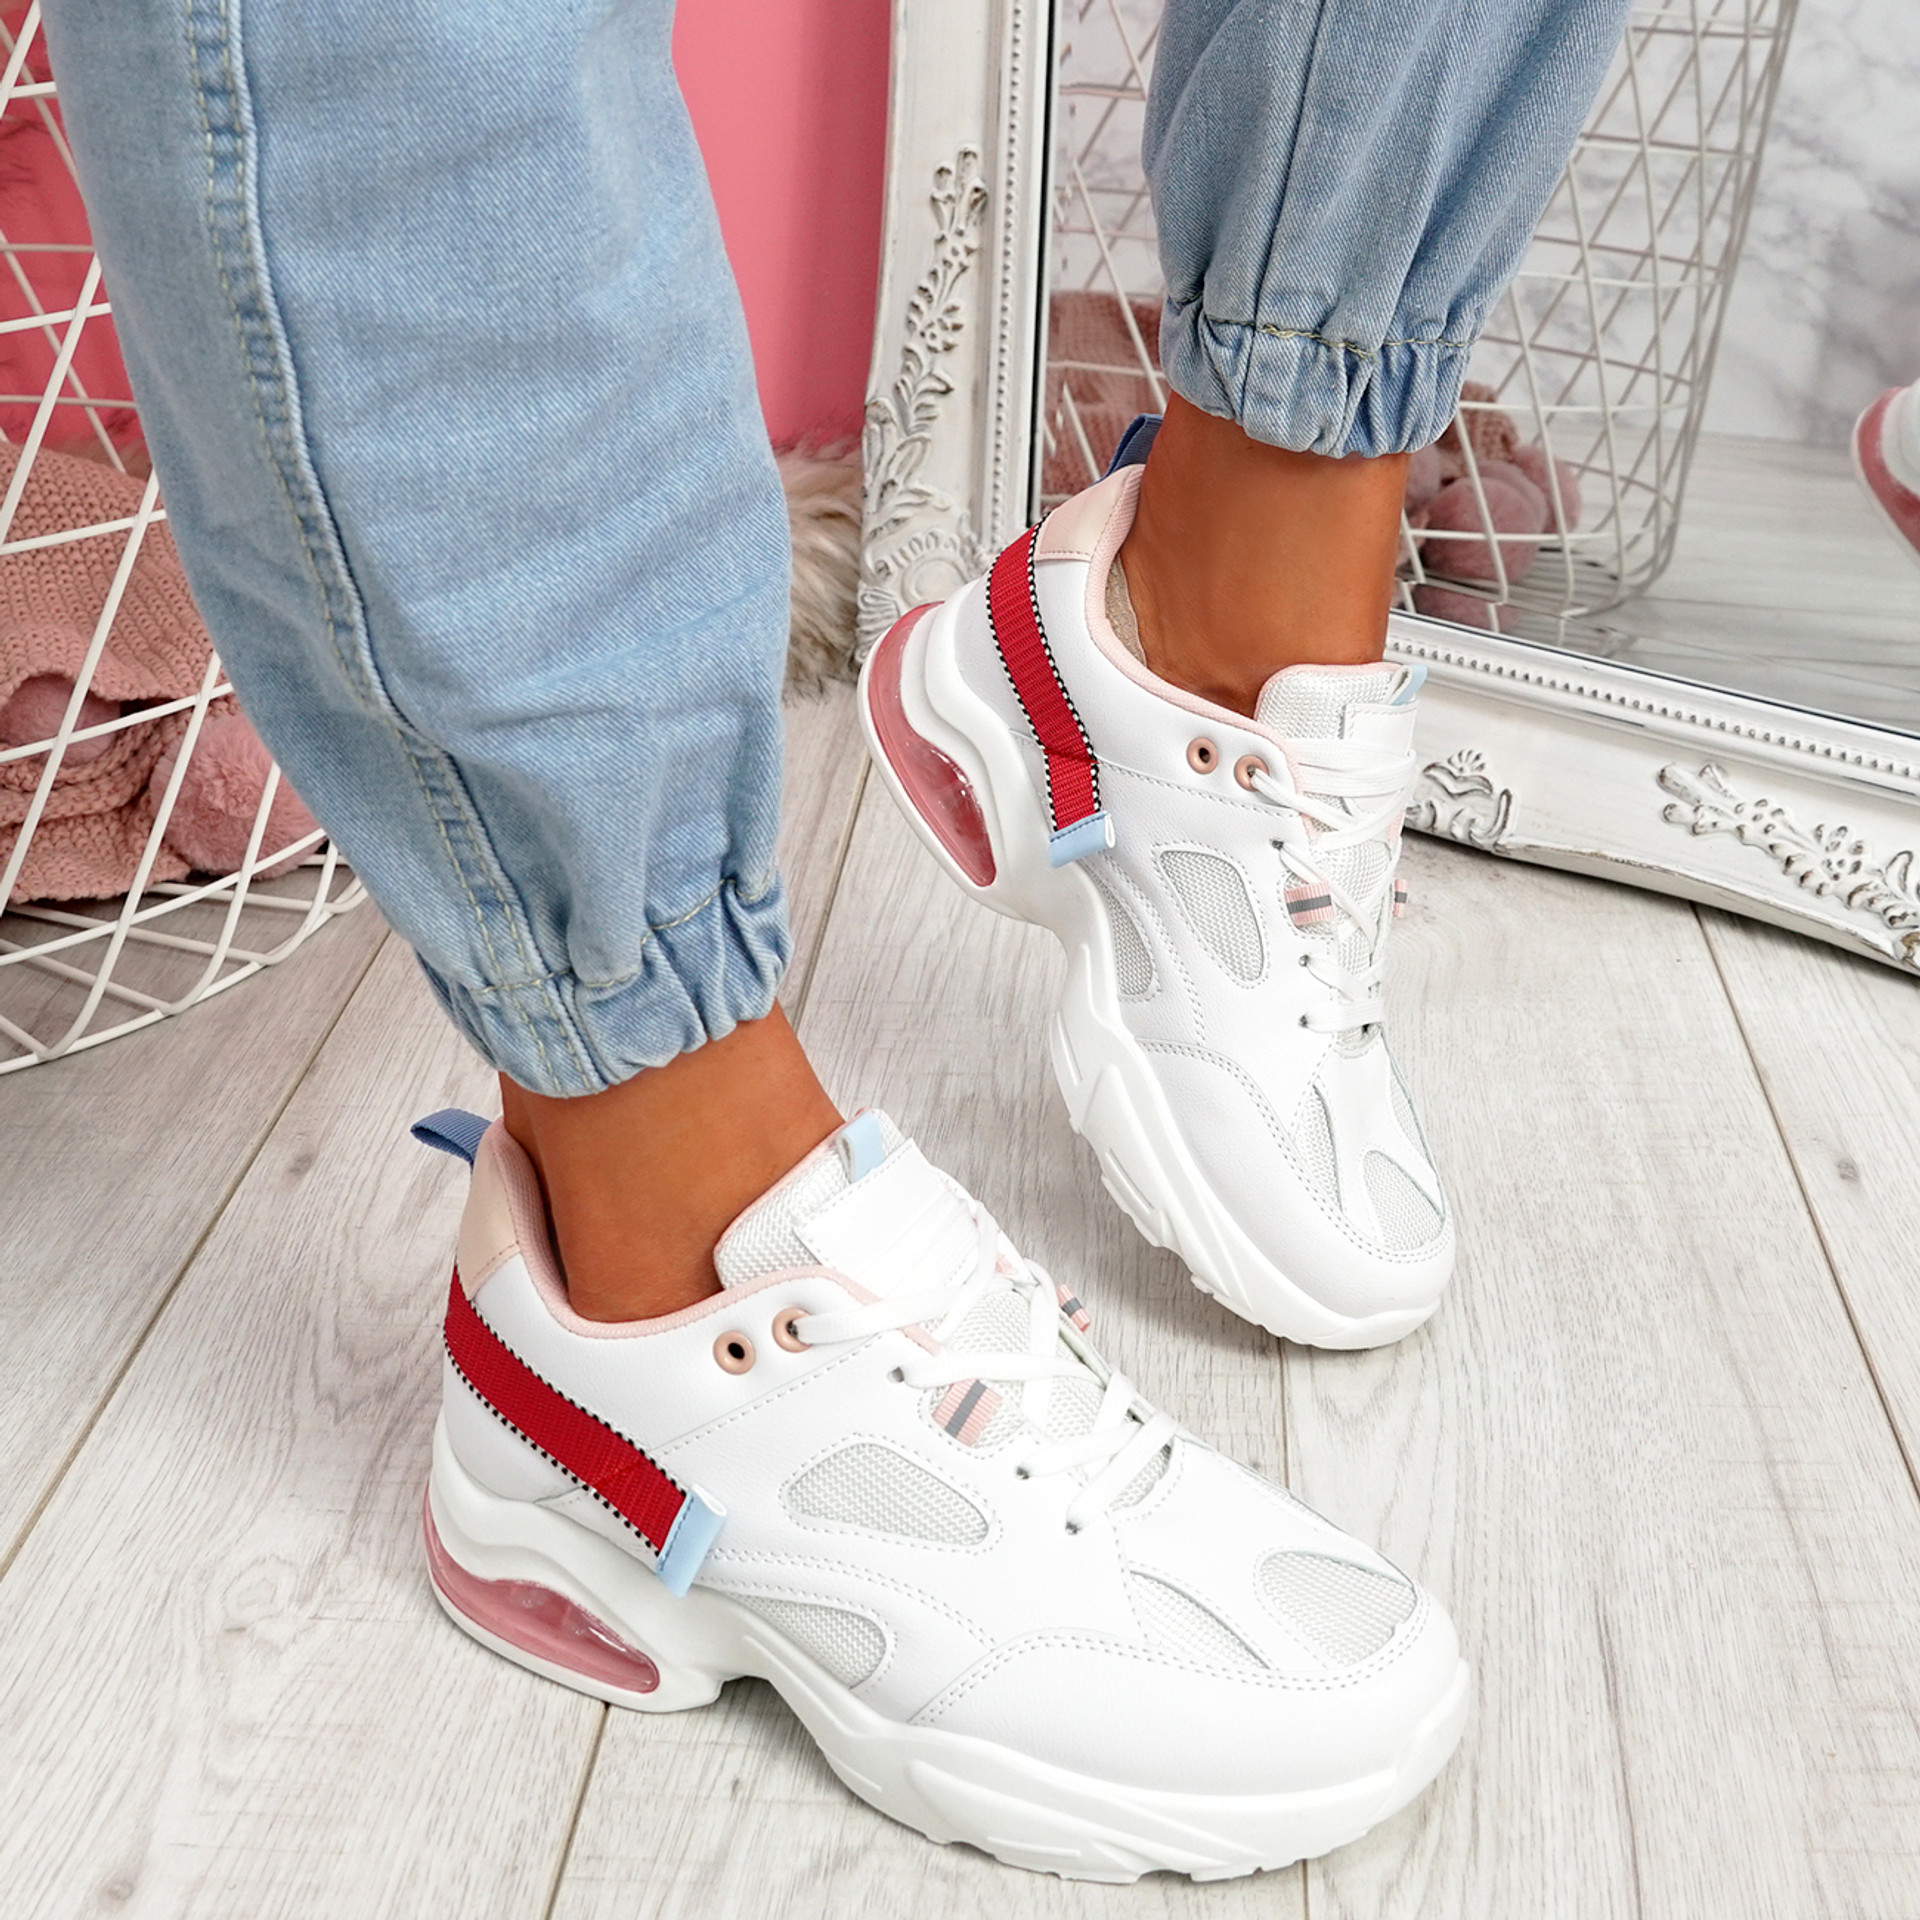 Wenny White Chunky Sneakers